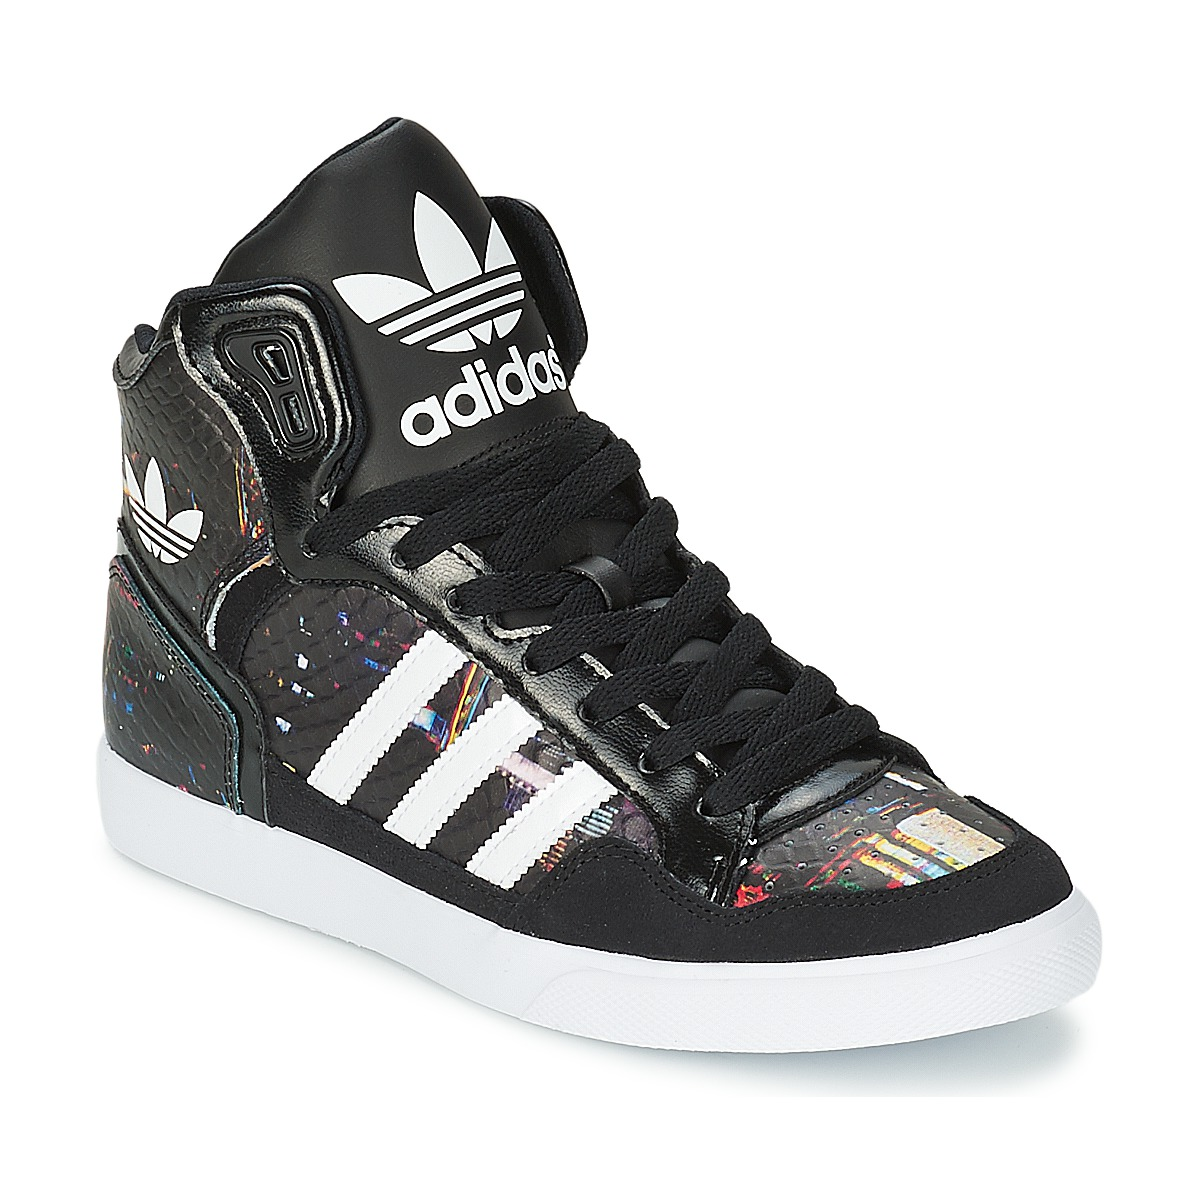 adidas chaussures basket adidas femme montante. Black Bedroom Furniture Sets. Home Design Ideas